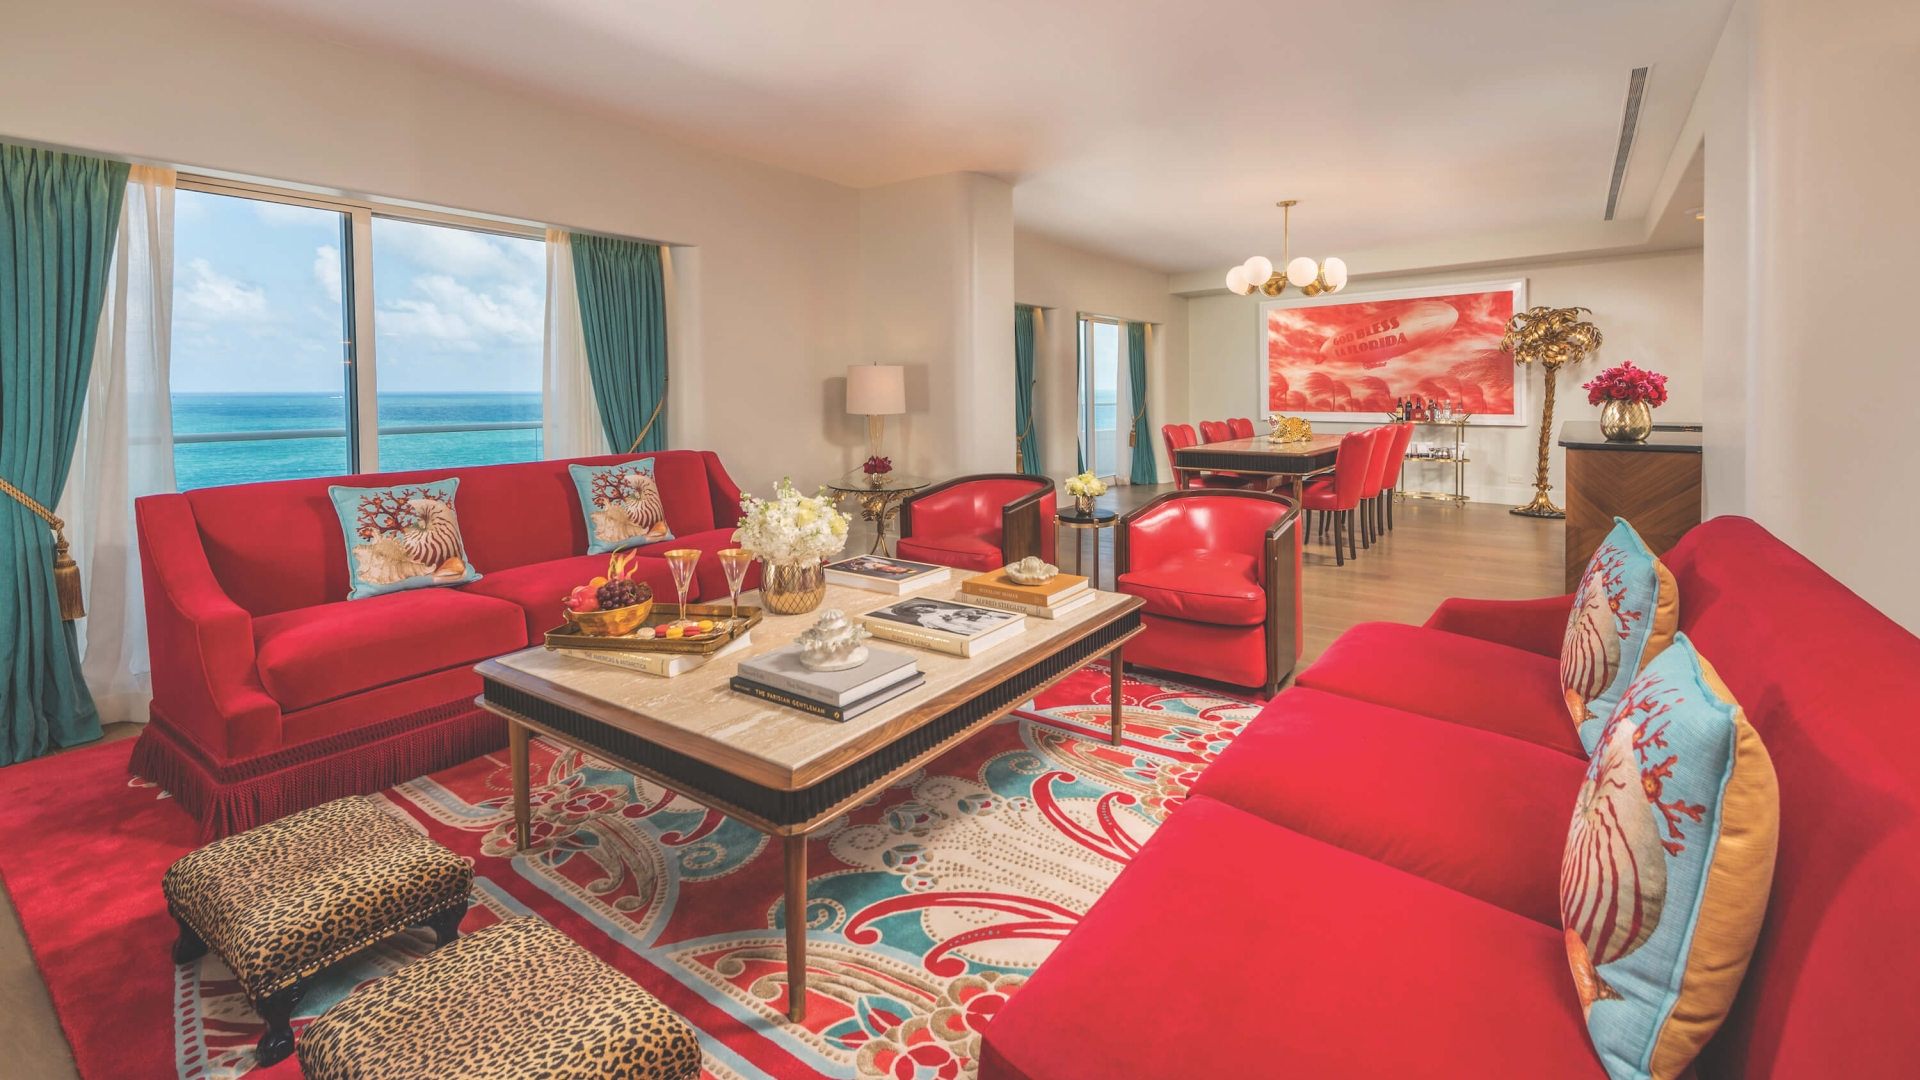 interior of sitting area with red couches, leopard print foot stools and the ocean visible through large window